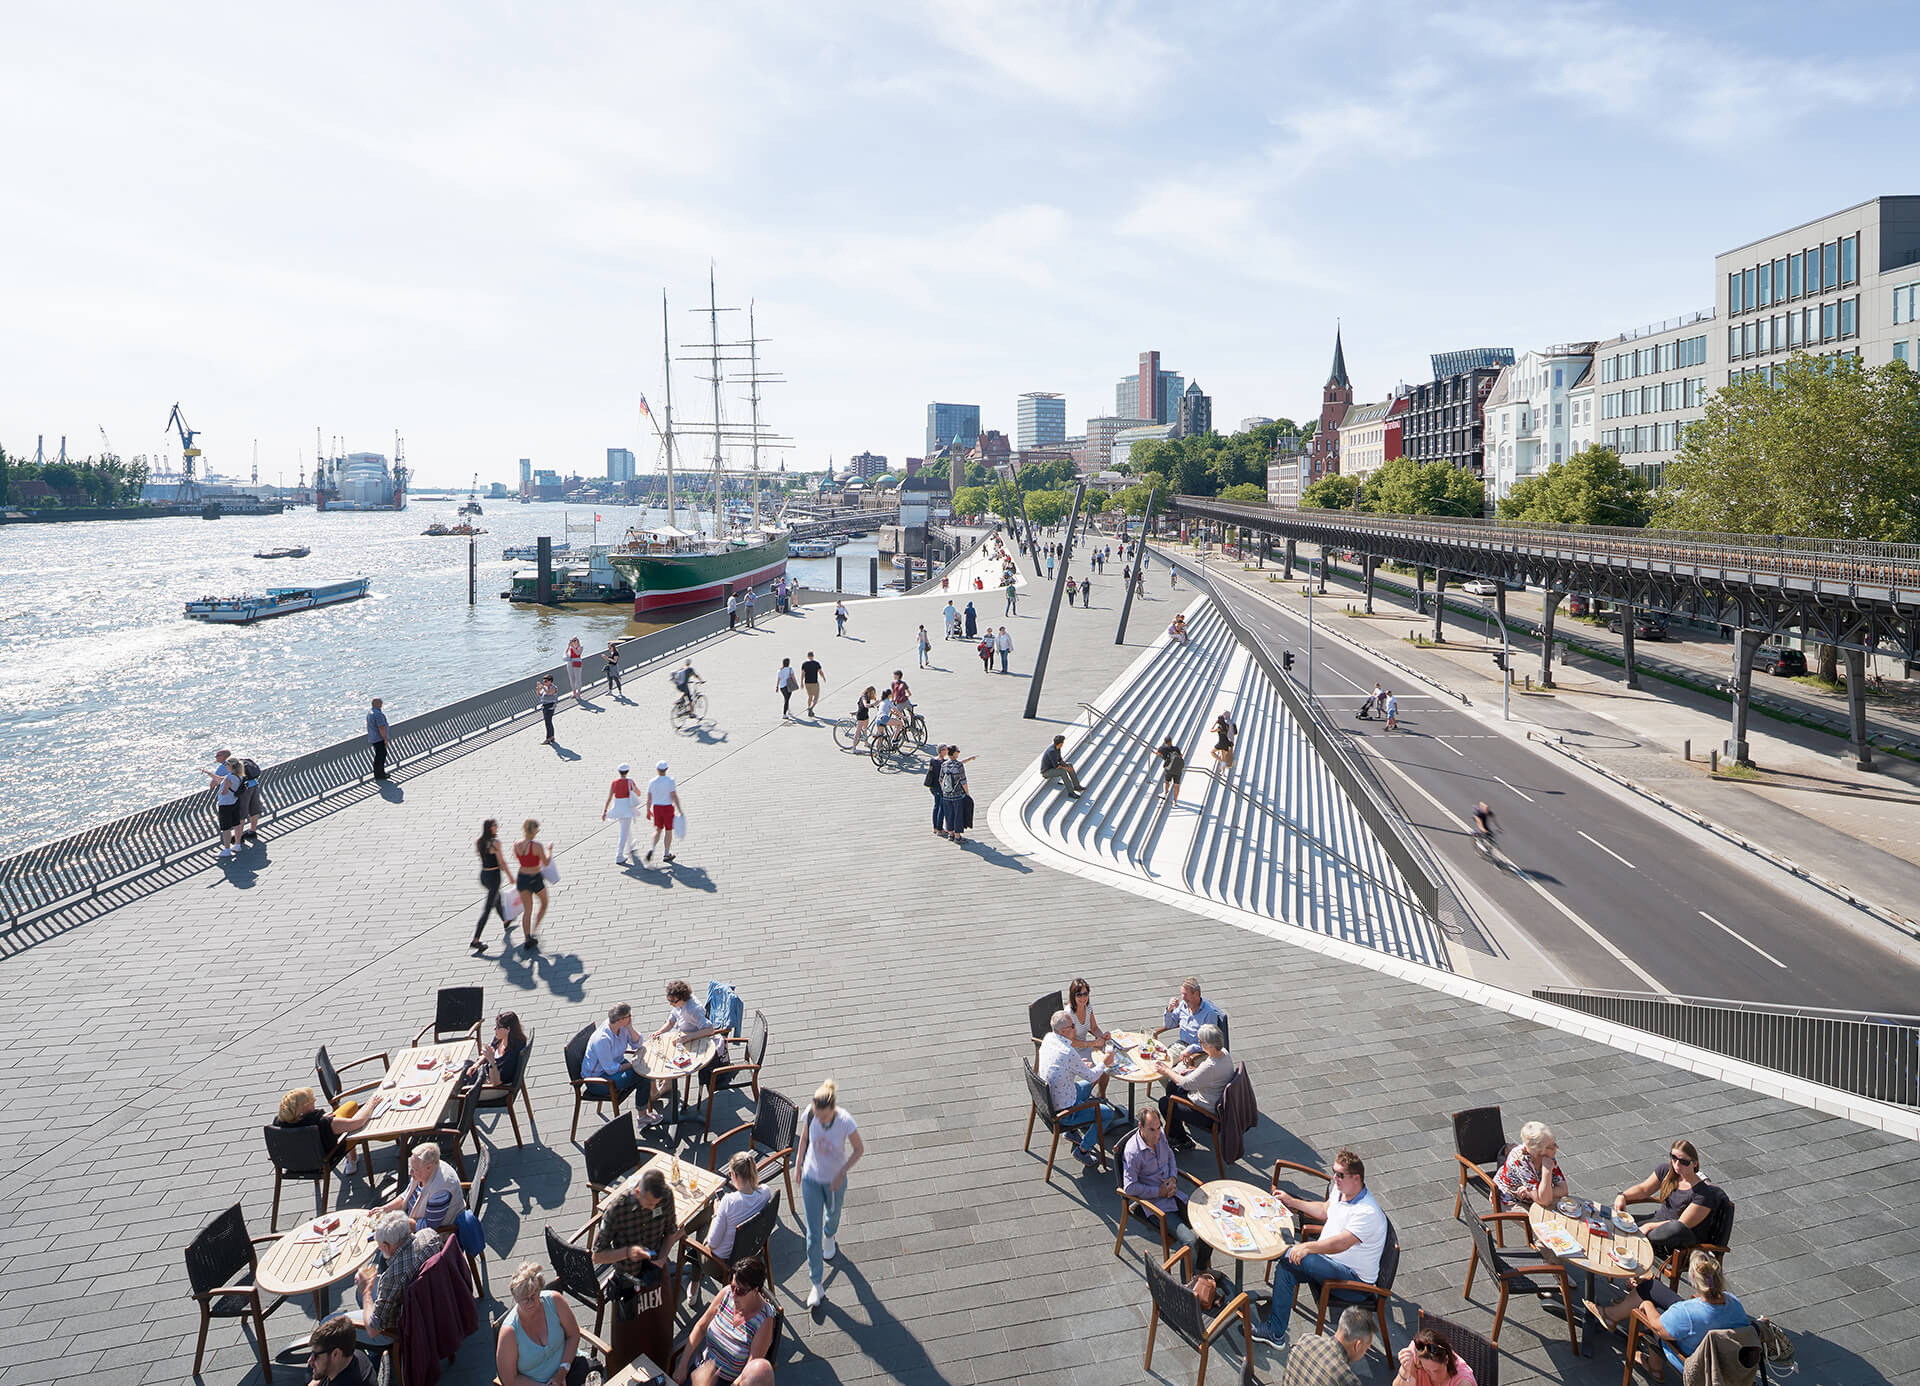 Zaha Hadid Architects' Hamburg River Promenade was completed in 2019 with the promenade stretching to 625 metres | Sea of Change | Roca London Gallery | STIRworld